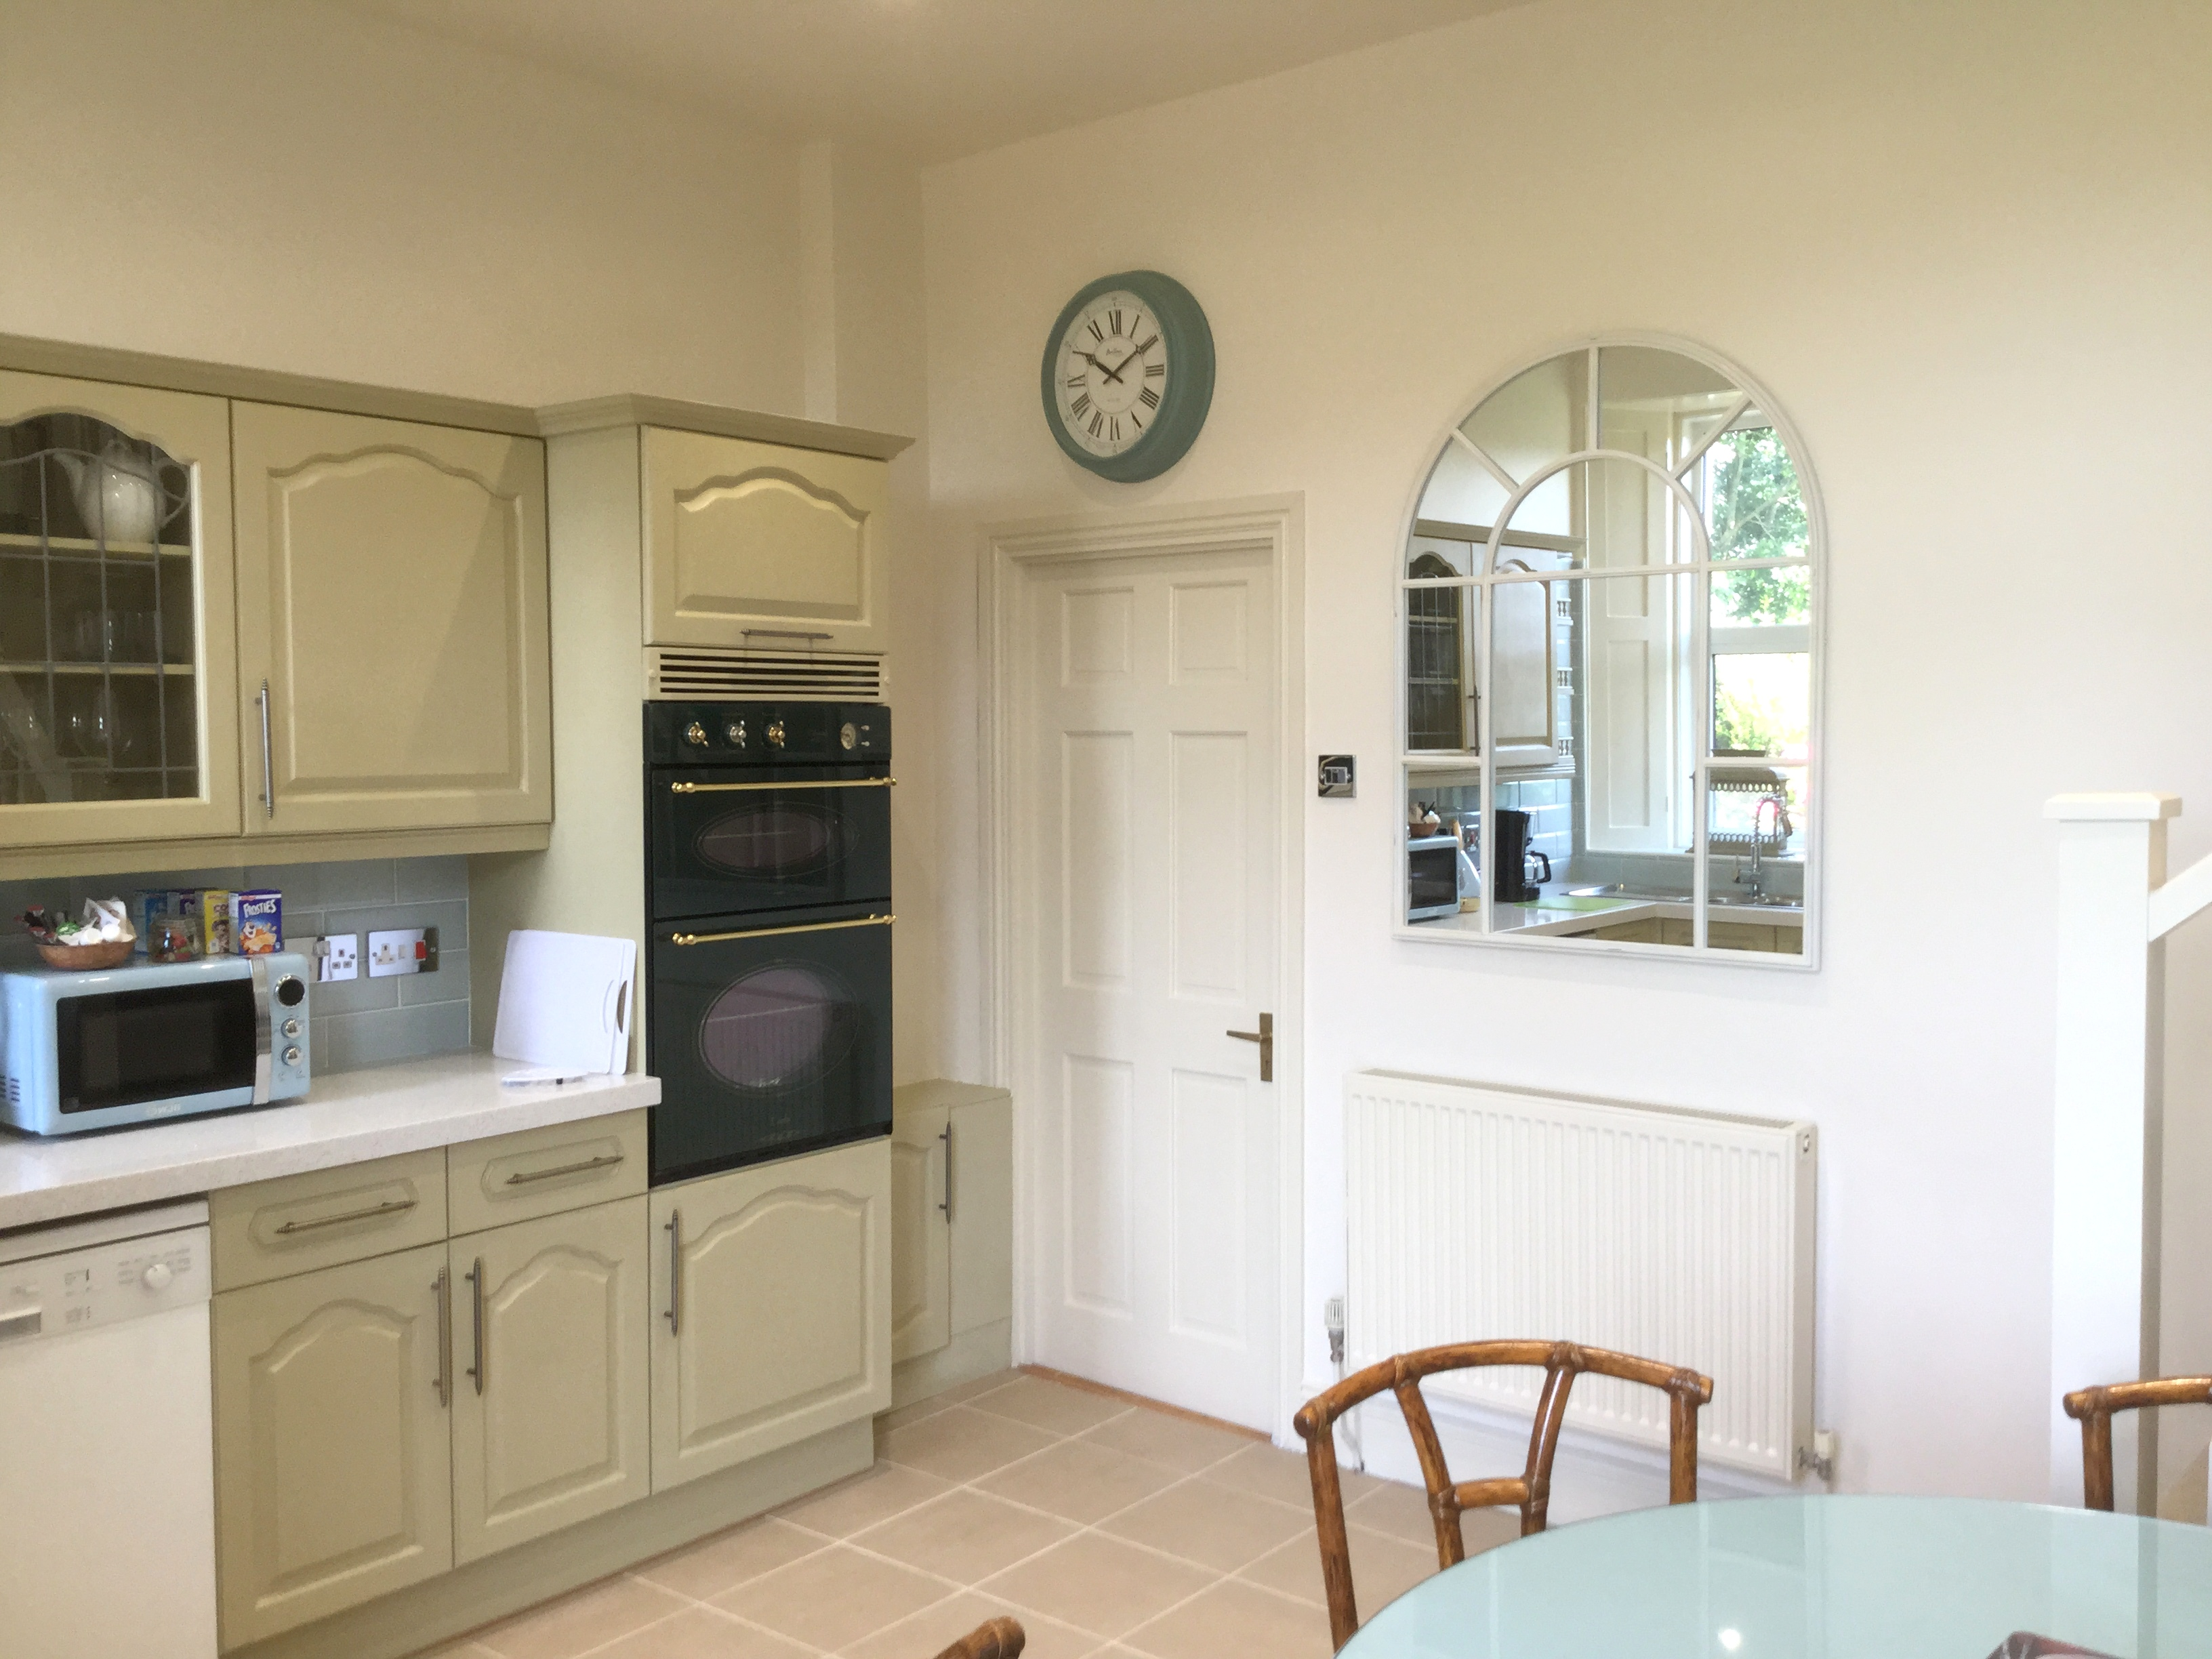 Kitchen in The Towhouse at The Muntham Apartments in Torquay